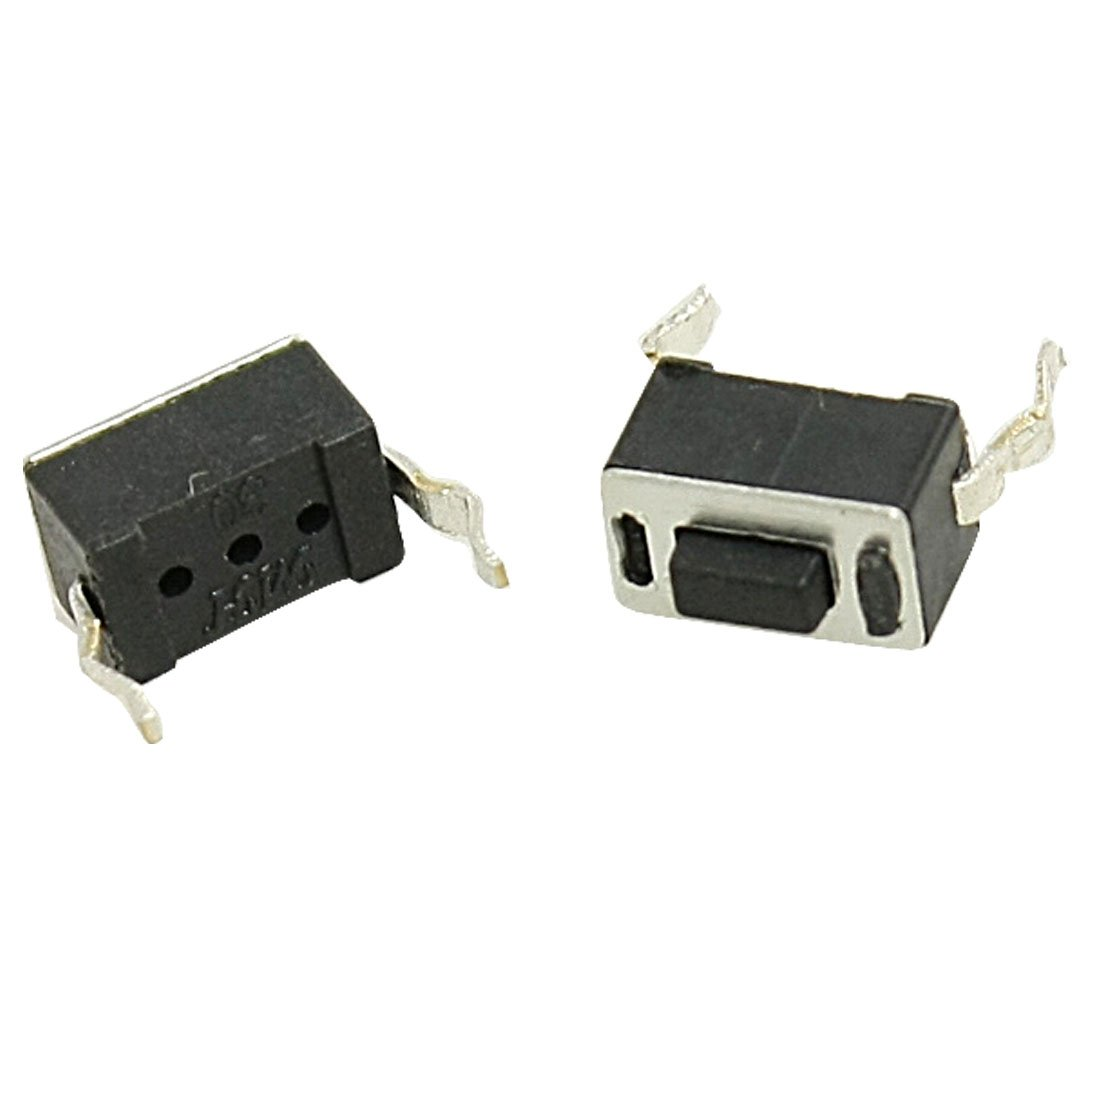 50x Momentary Tact Tactile Push Button Switch 2 Pin Dip Through Hole Buy Wire Buttonpush Micro 3x6x43mm Diy Tools